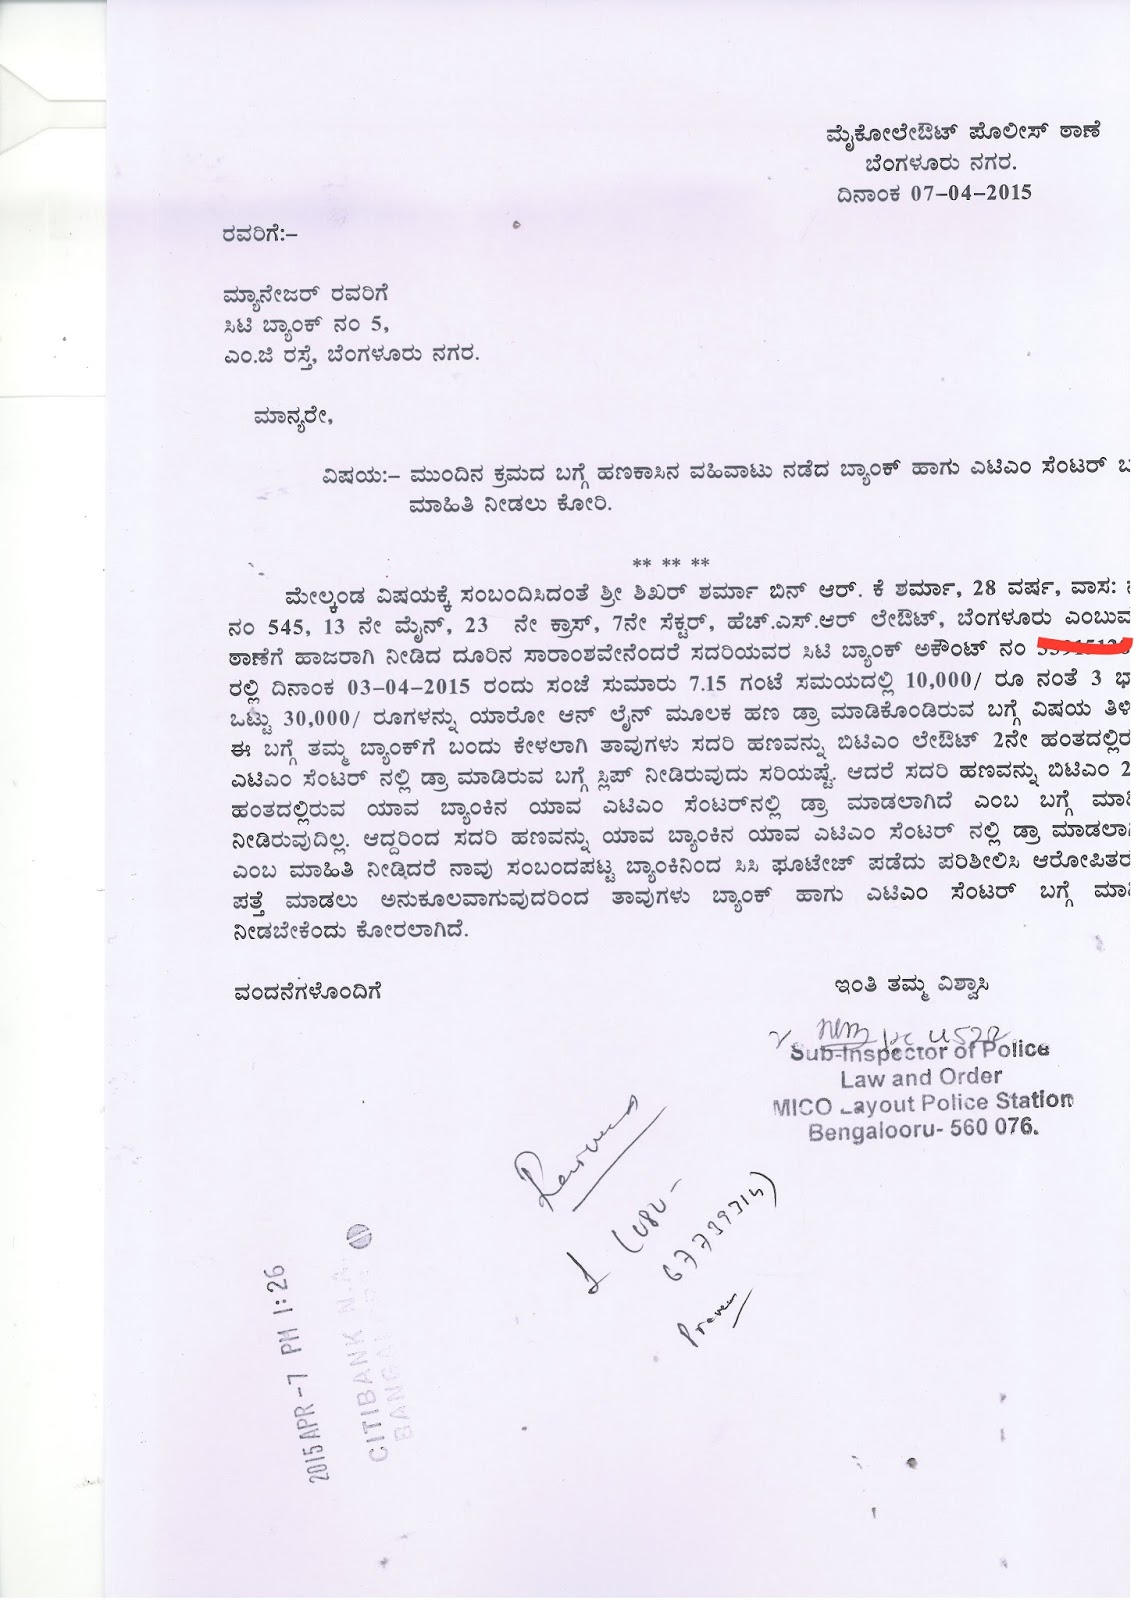 Complaint Letter Format Icici Bank.  Atm Withdrawal Complaint Letter Format Sle To Bank Manager For Wrong Transaction Cover Exle atm withdrawal complaint letter format 28 images sle